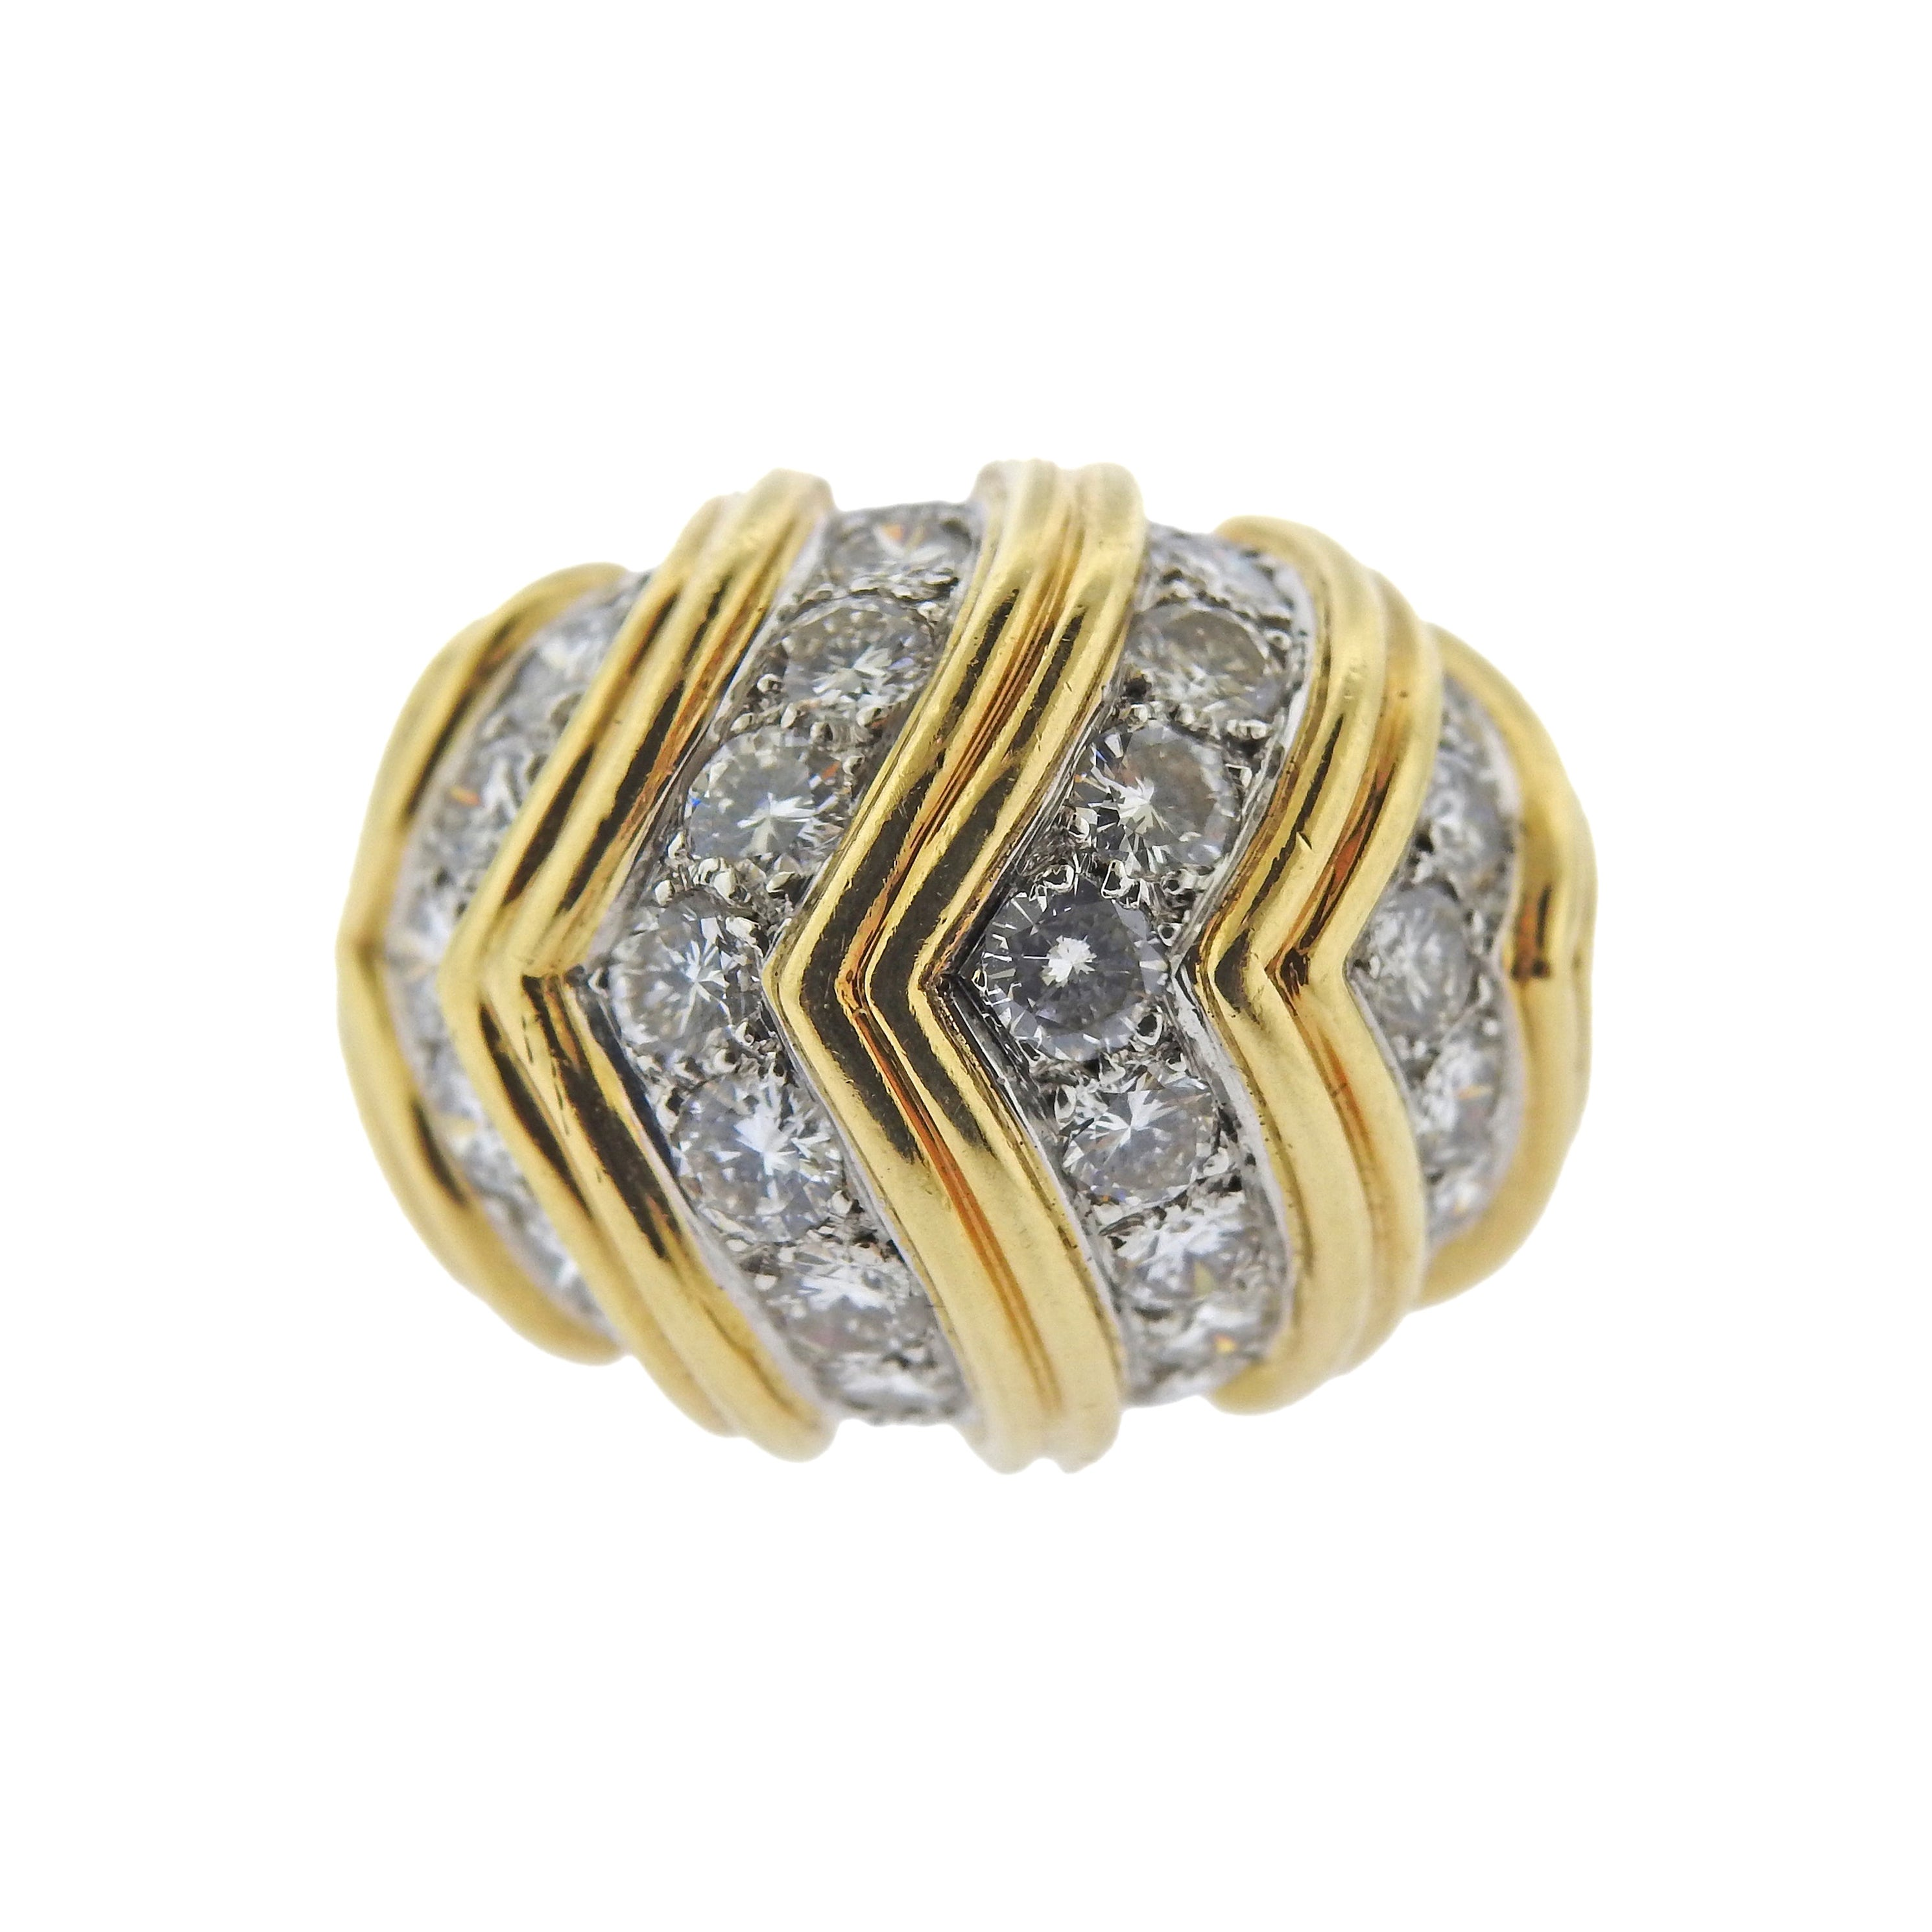 Tiffany & Co Diamond Gold Dome Ring